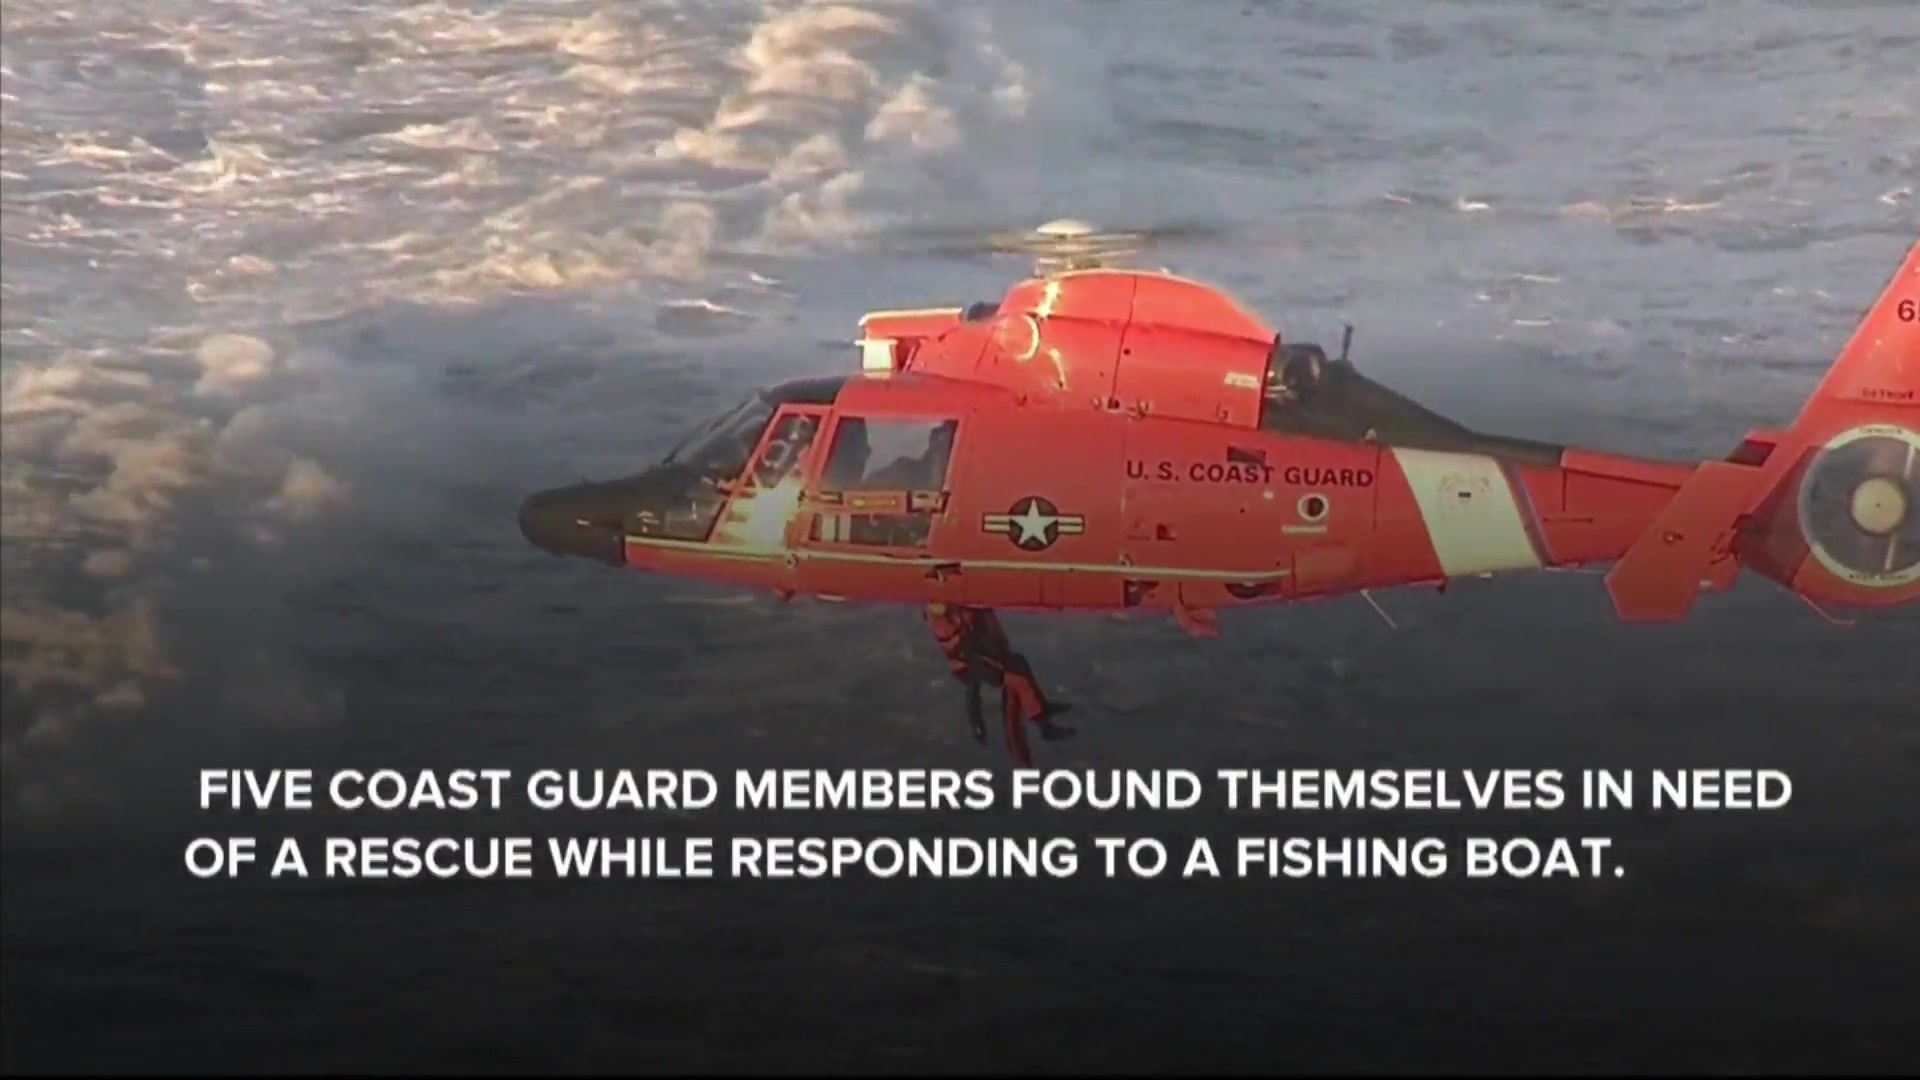 Coast Guard Boat Capsizes During Call